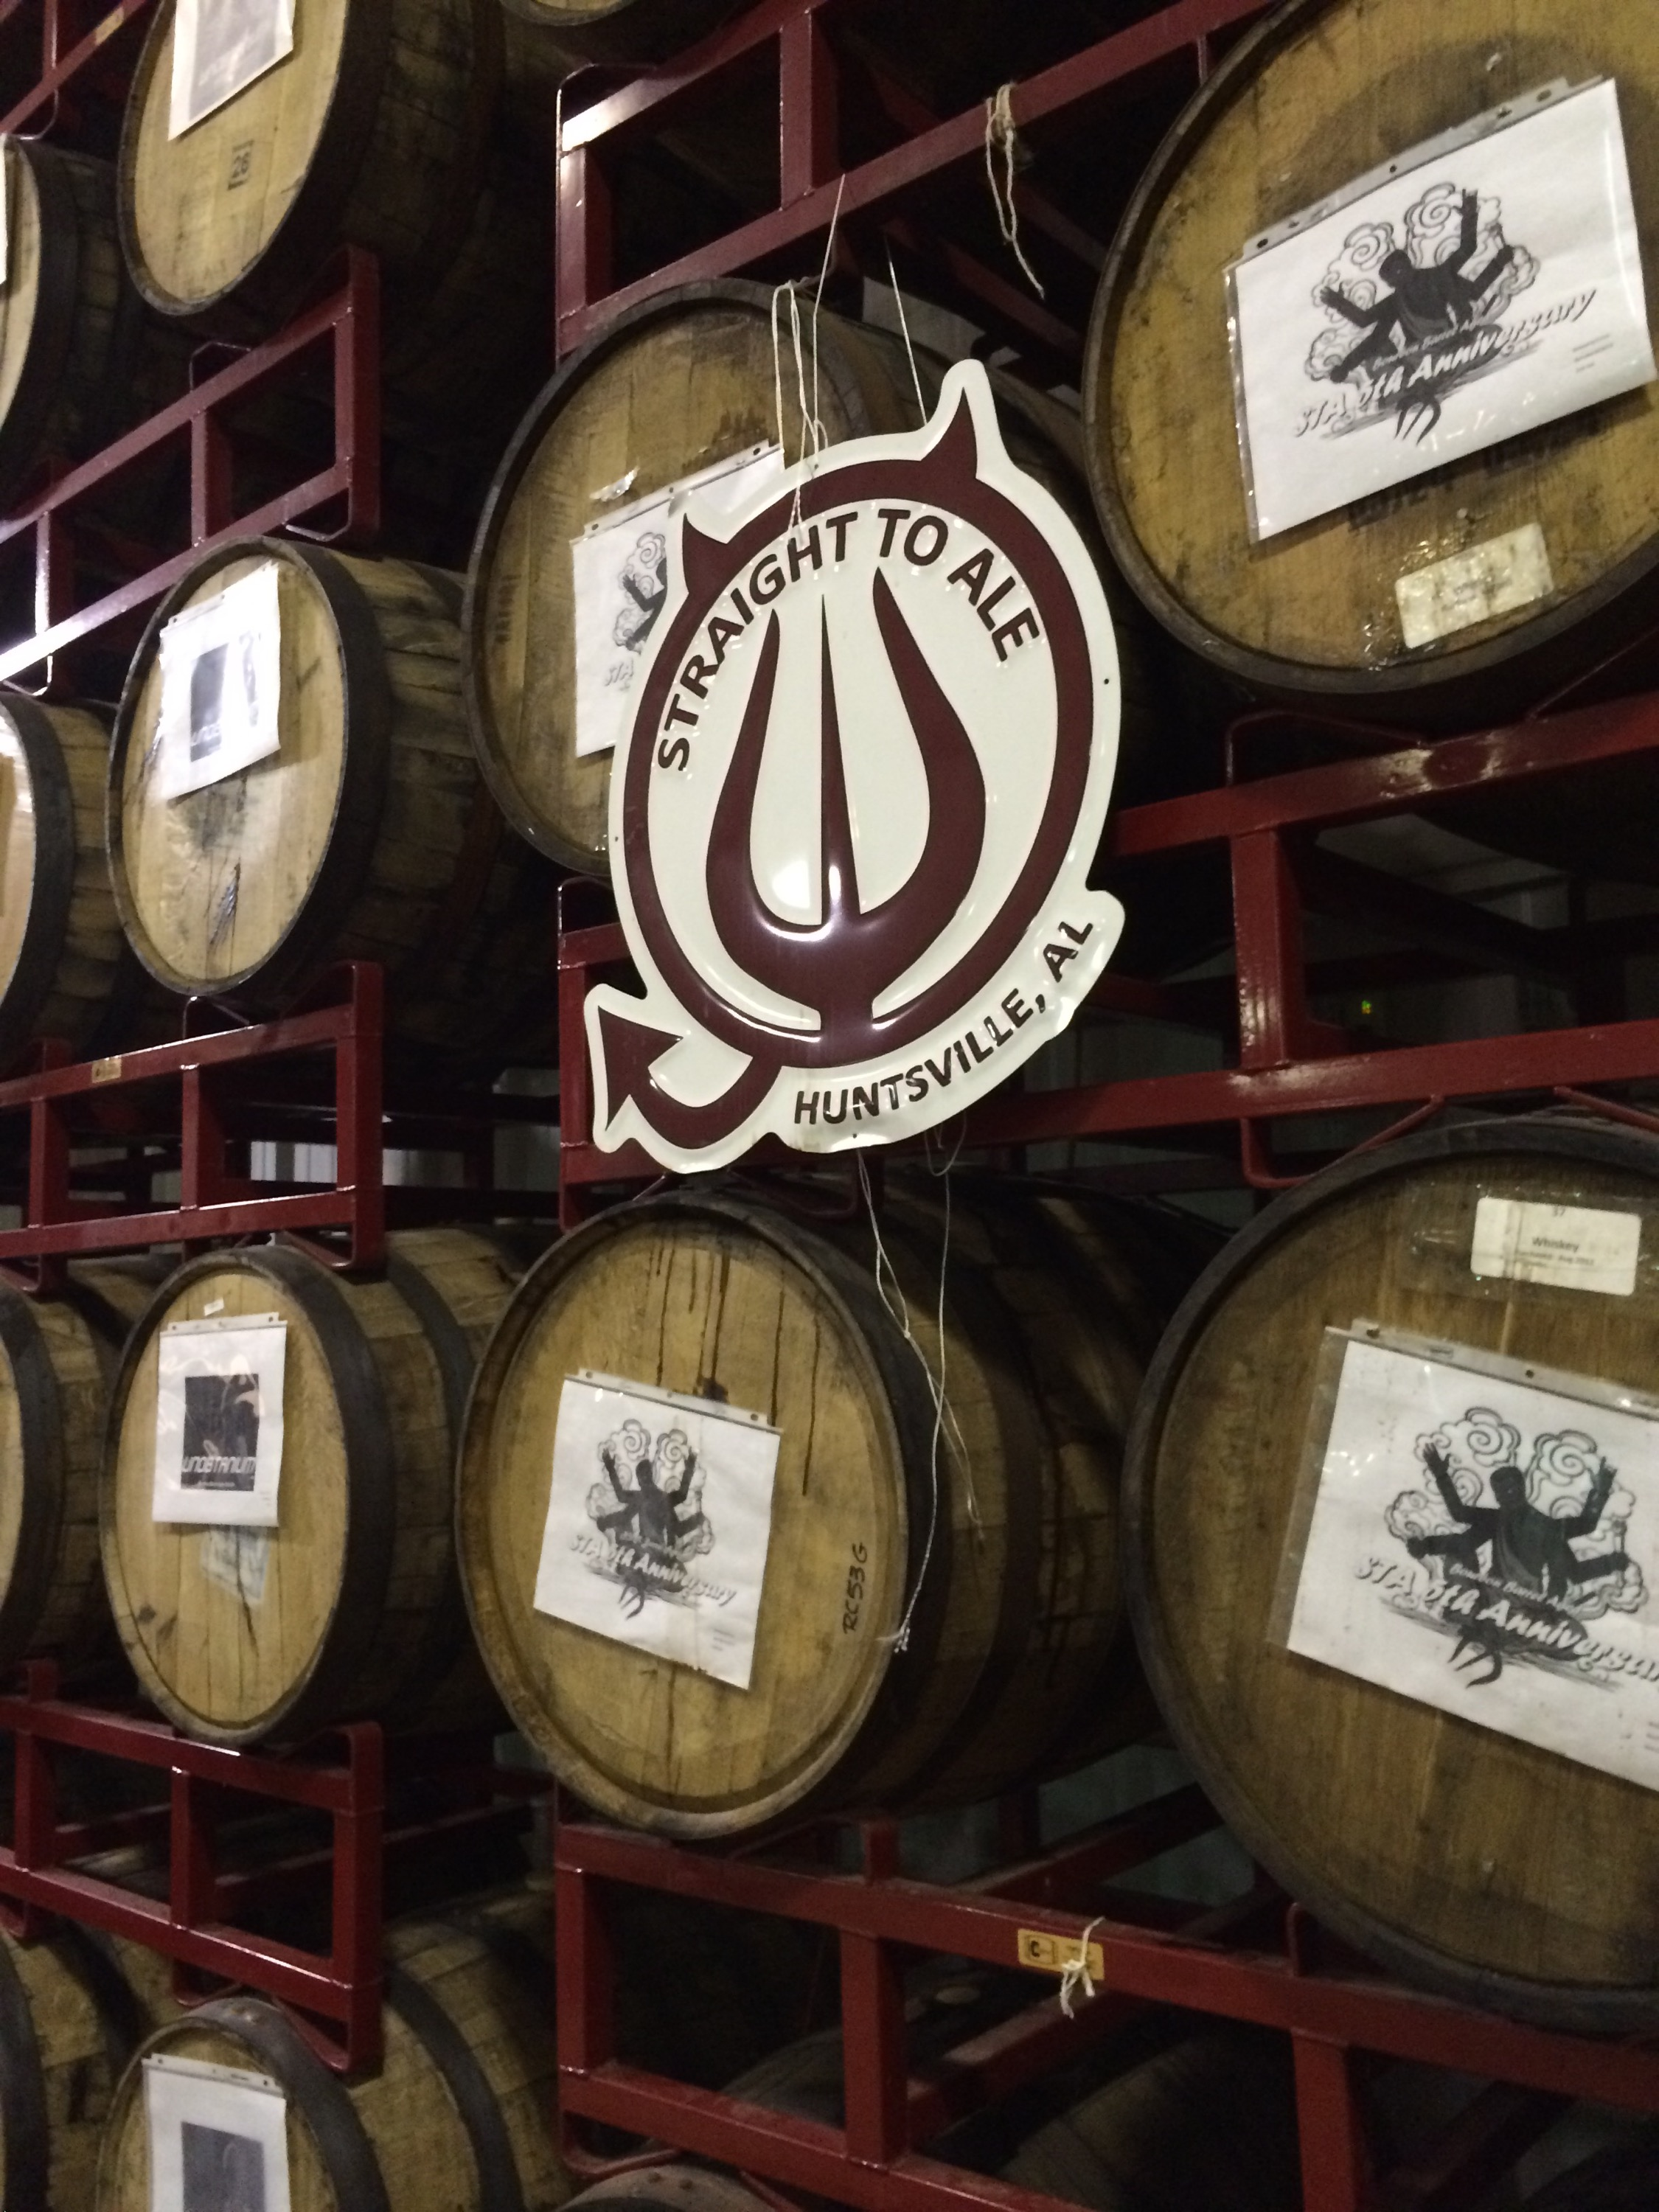 Barrel aged beers at Straight to Ale.